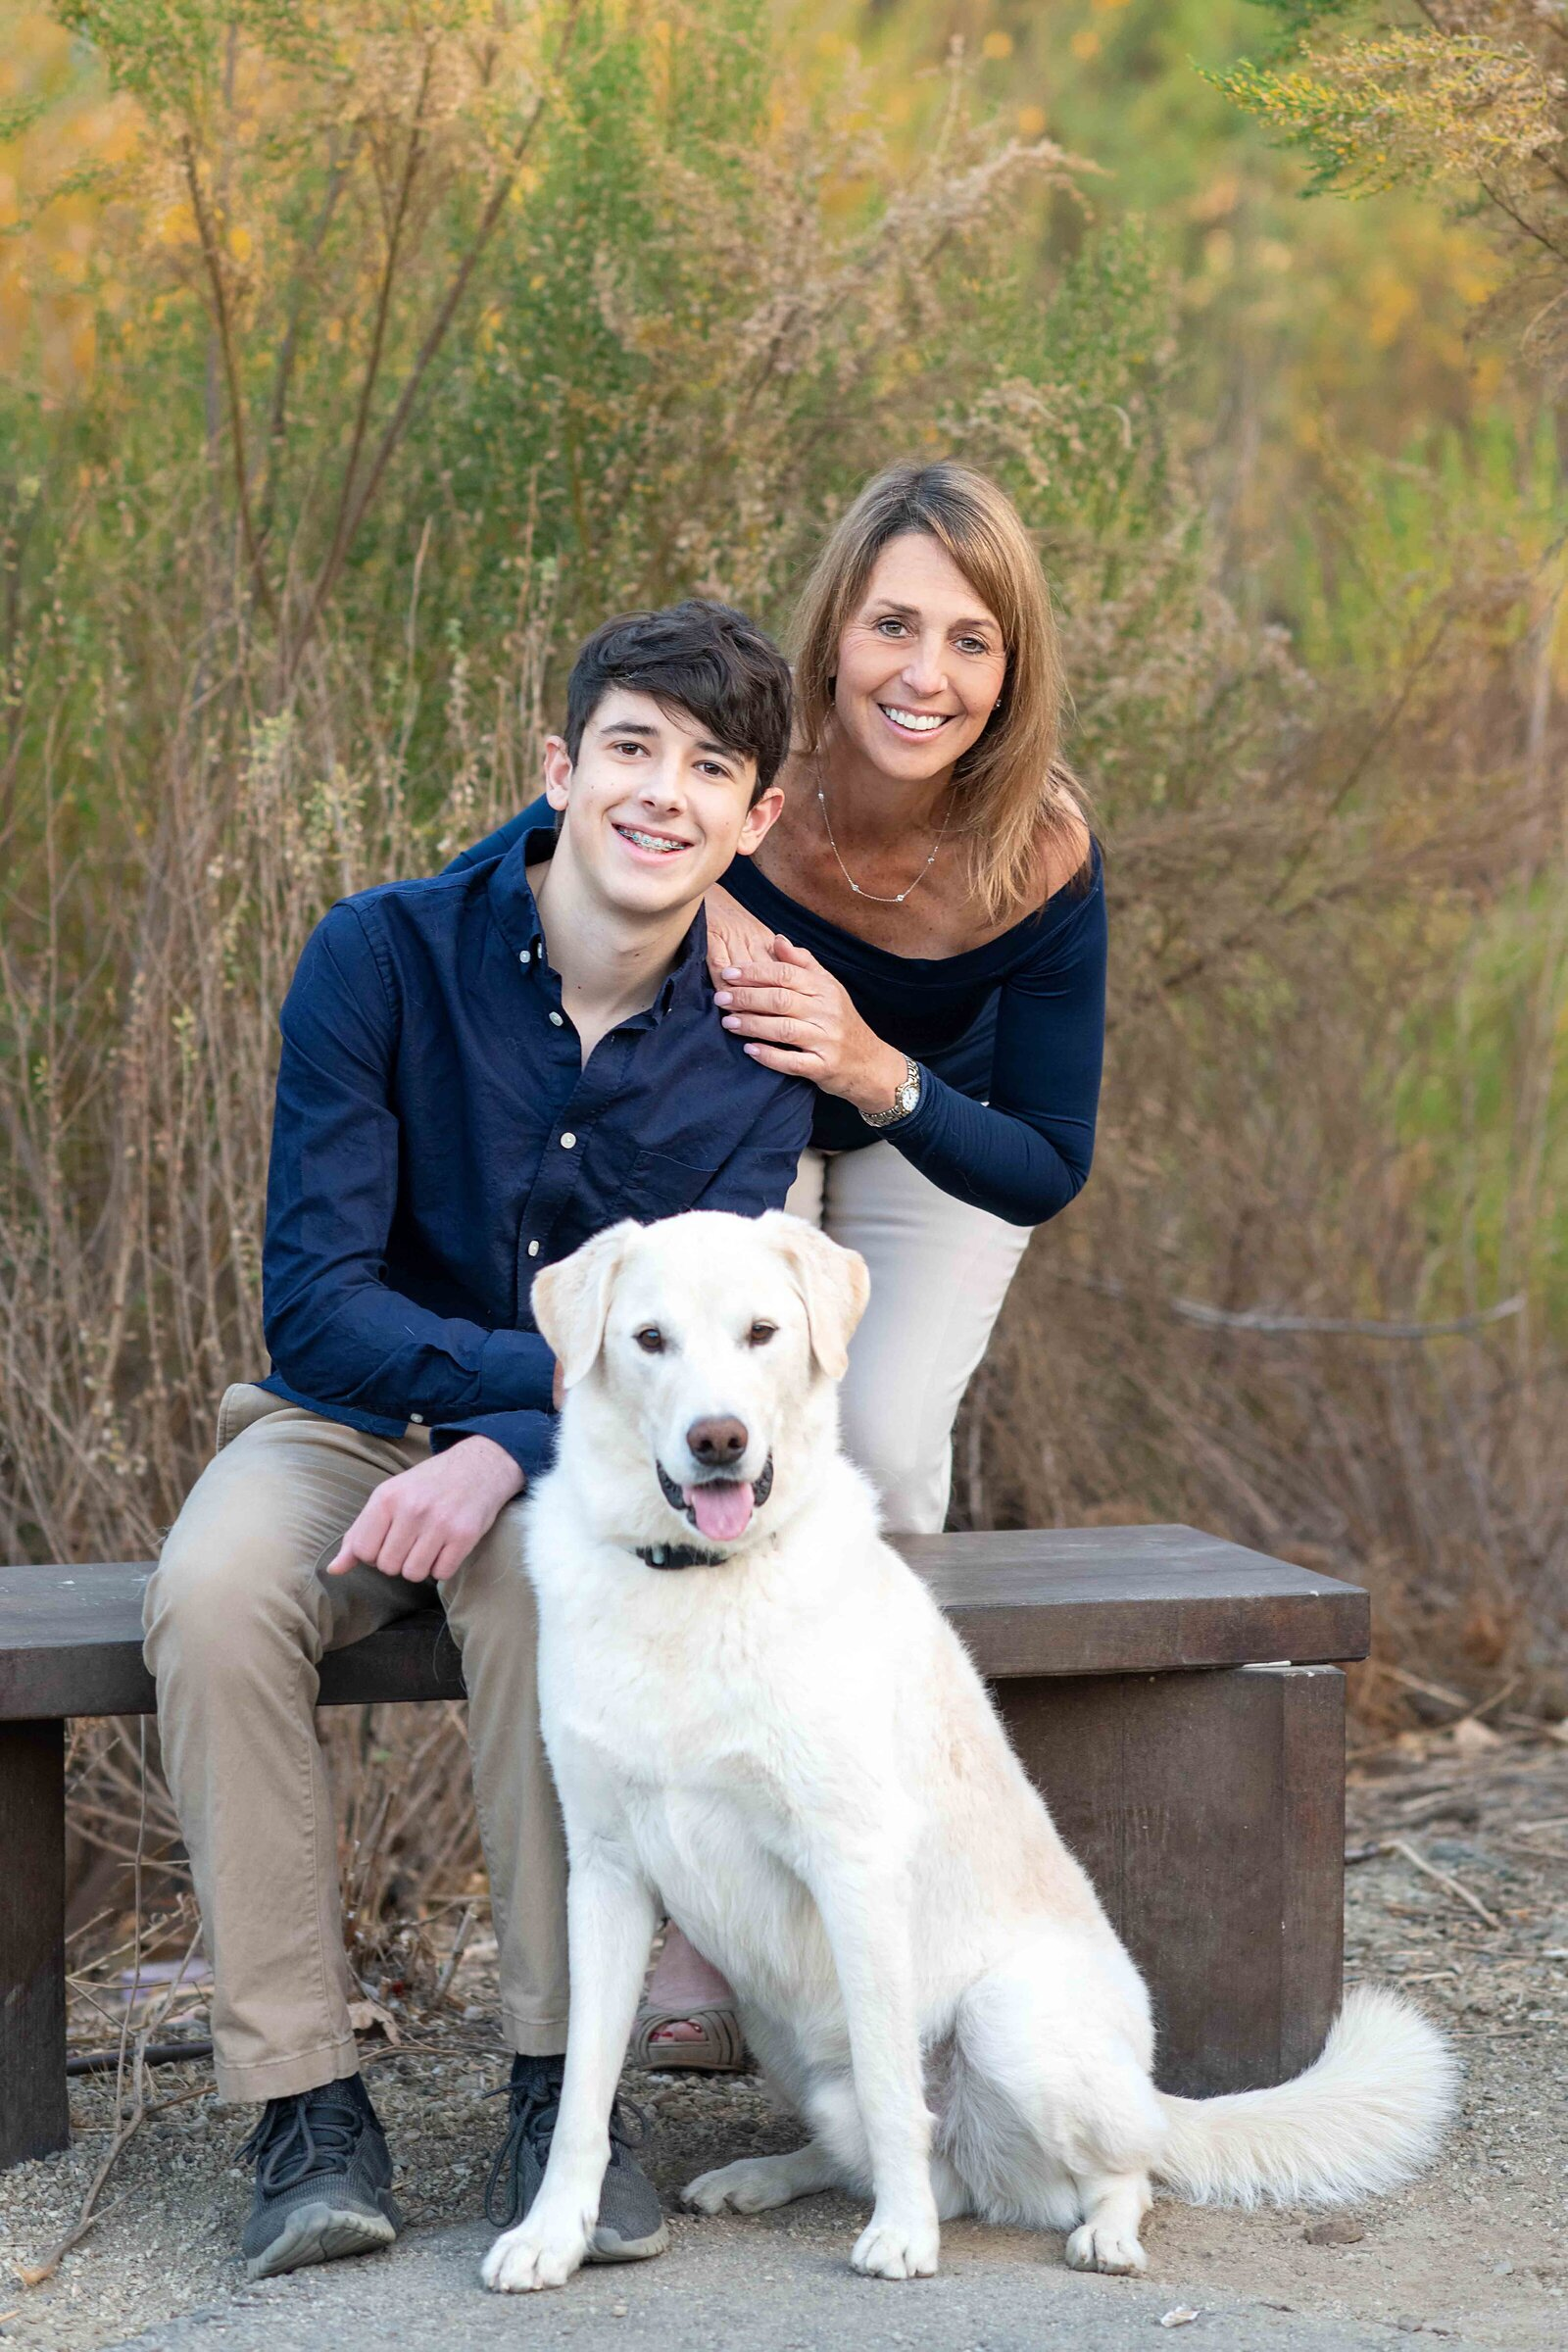 Maria-McCarthy-Photography-family-portrait-dog